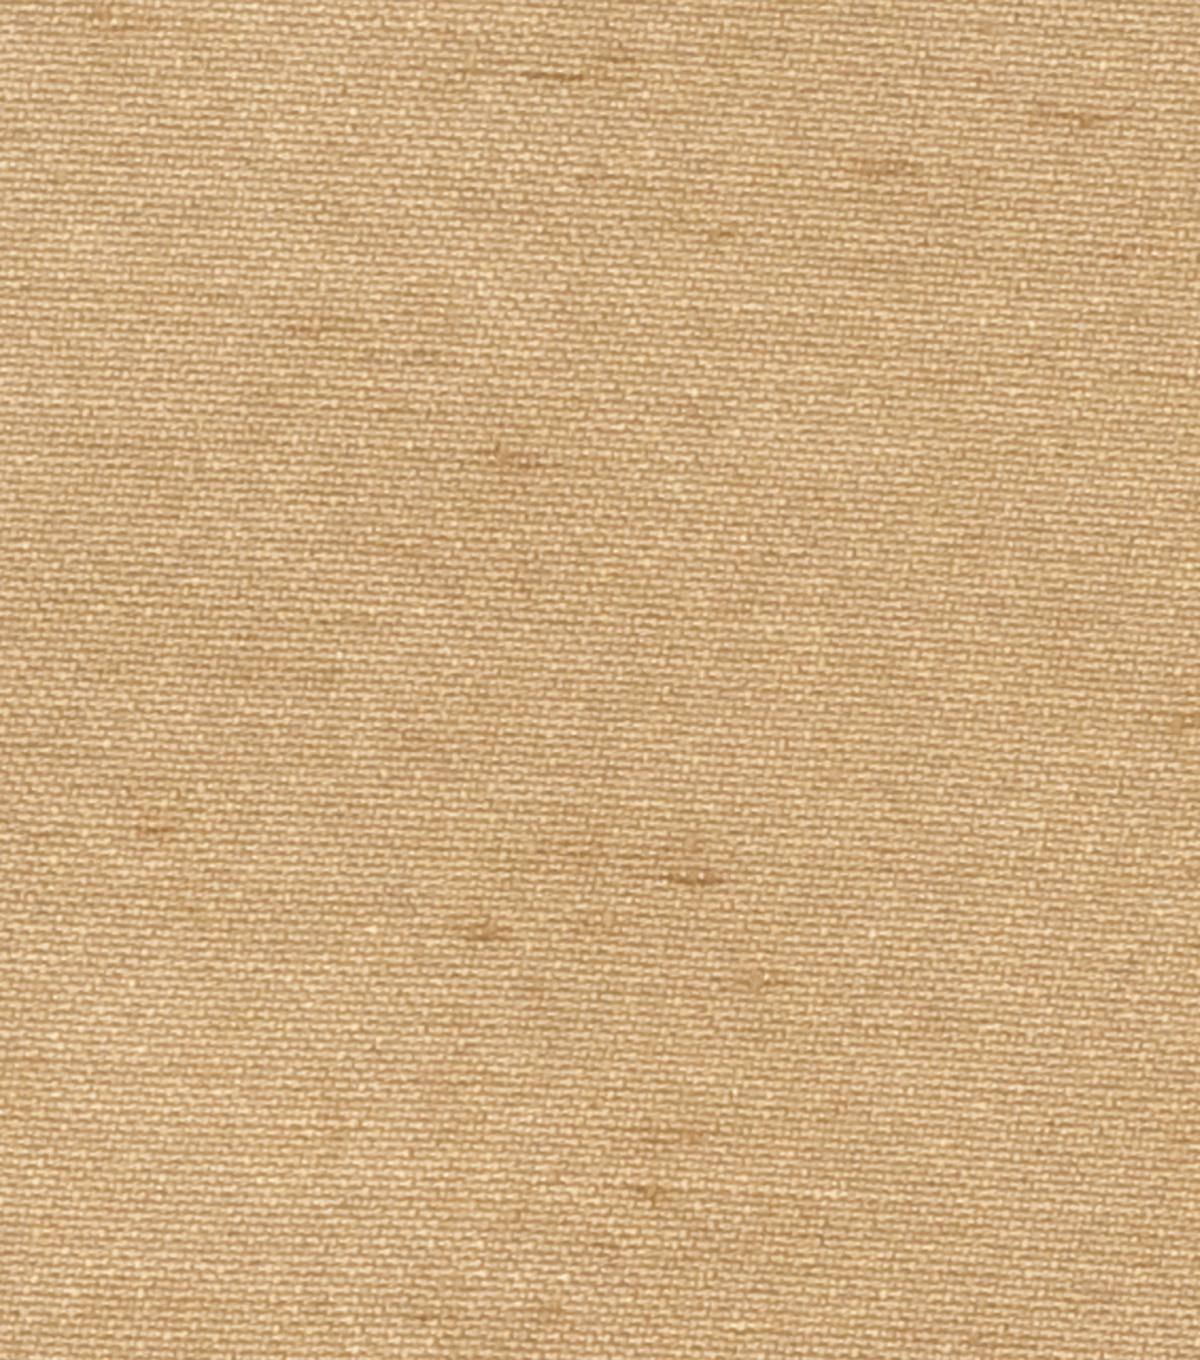 Eaton Square Lightweight Decor Fabric 54\u0022-Antique Satin /Driftwood